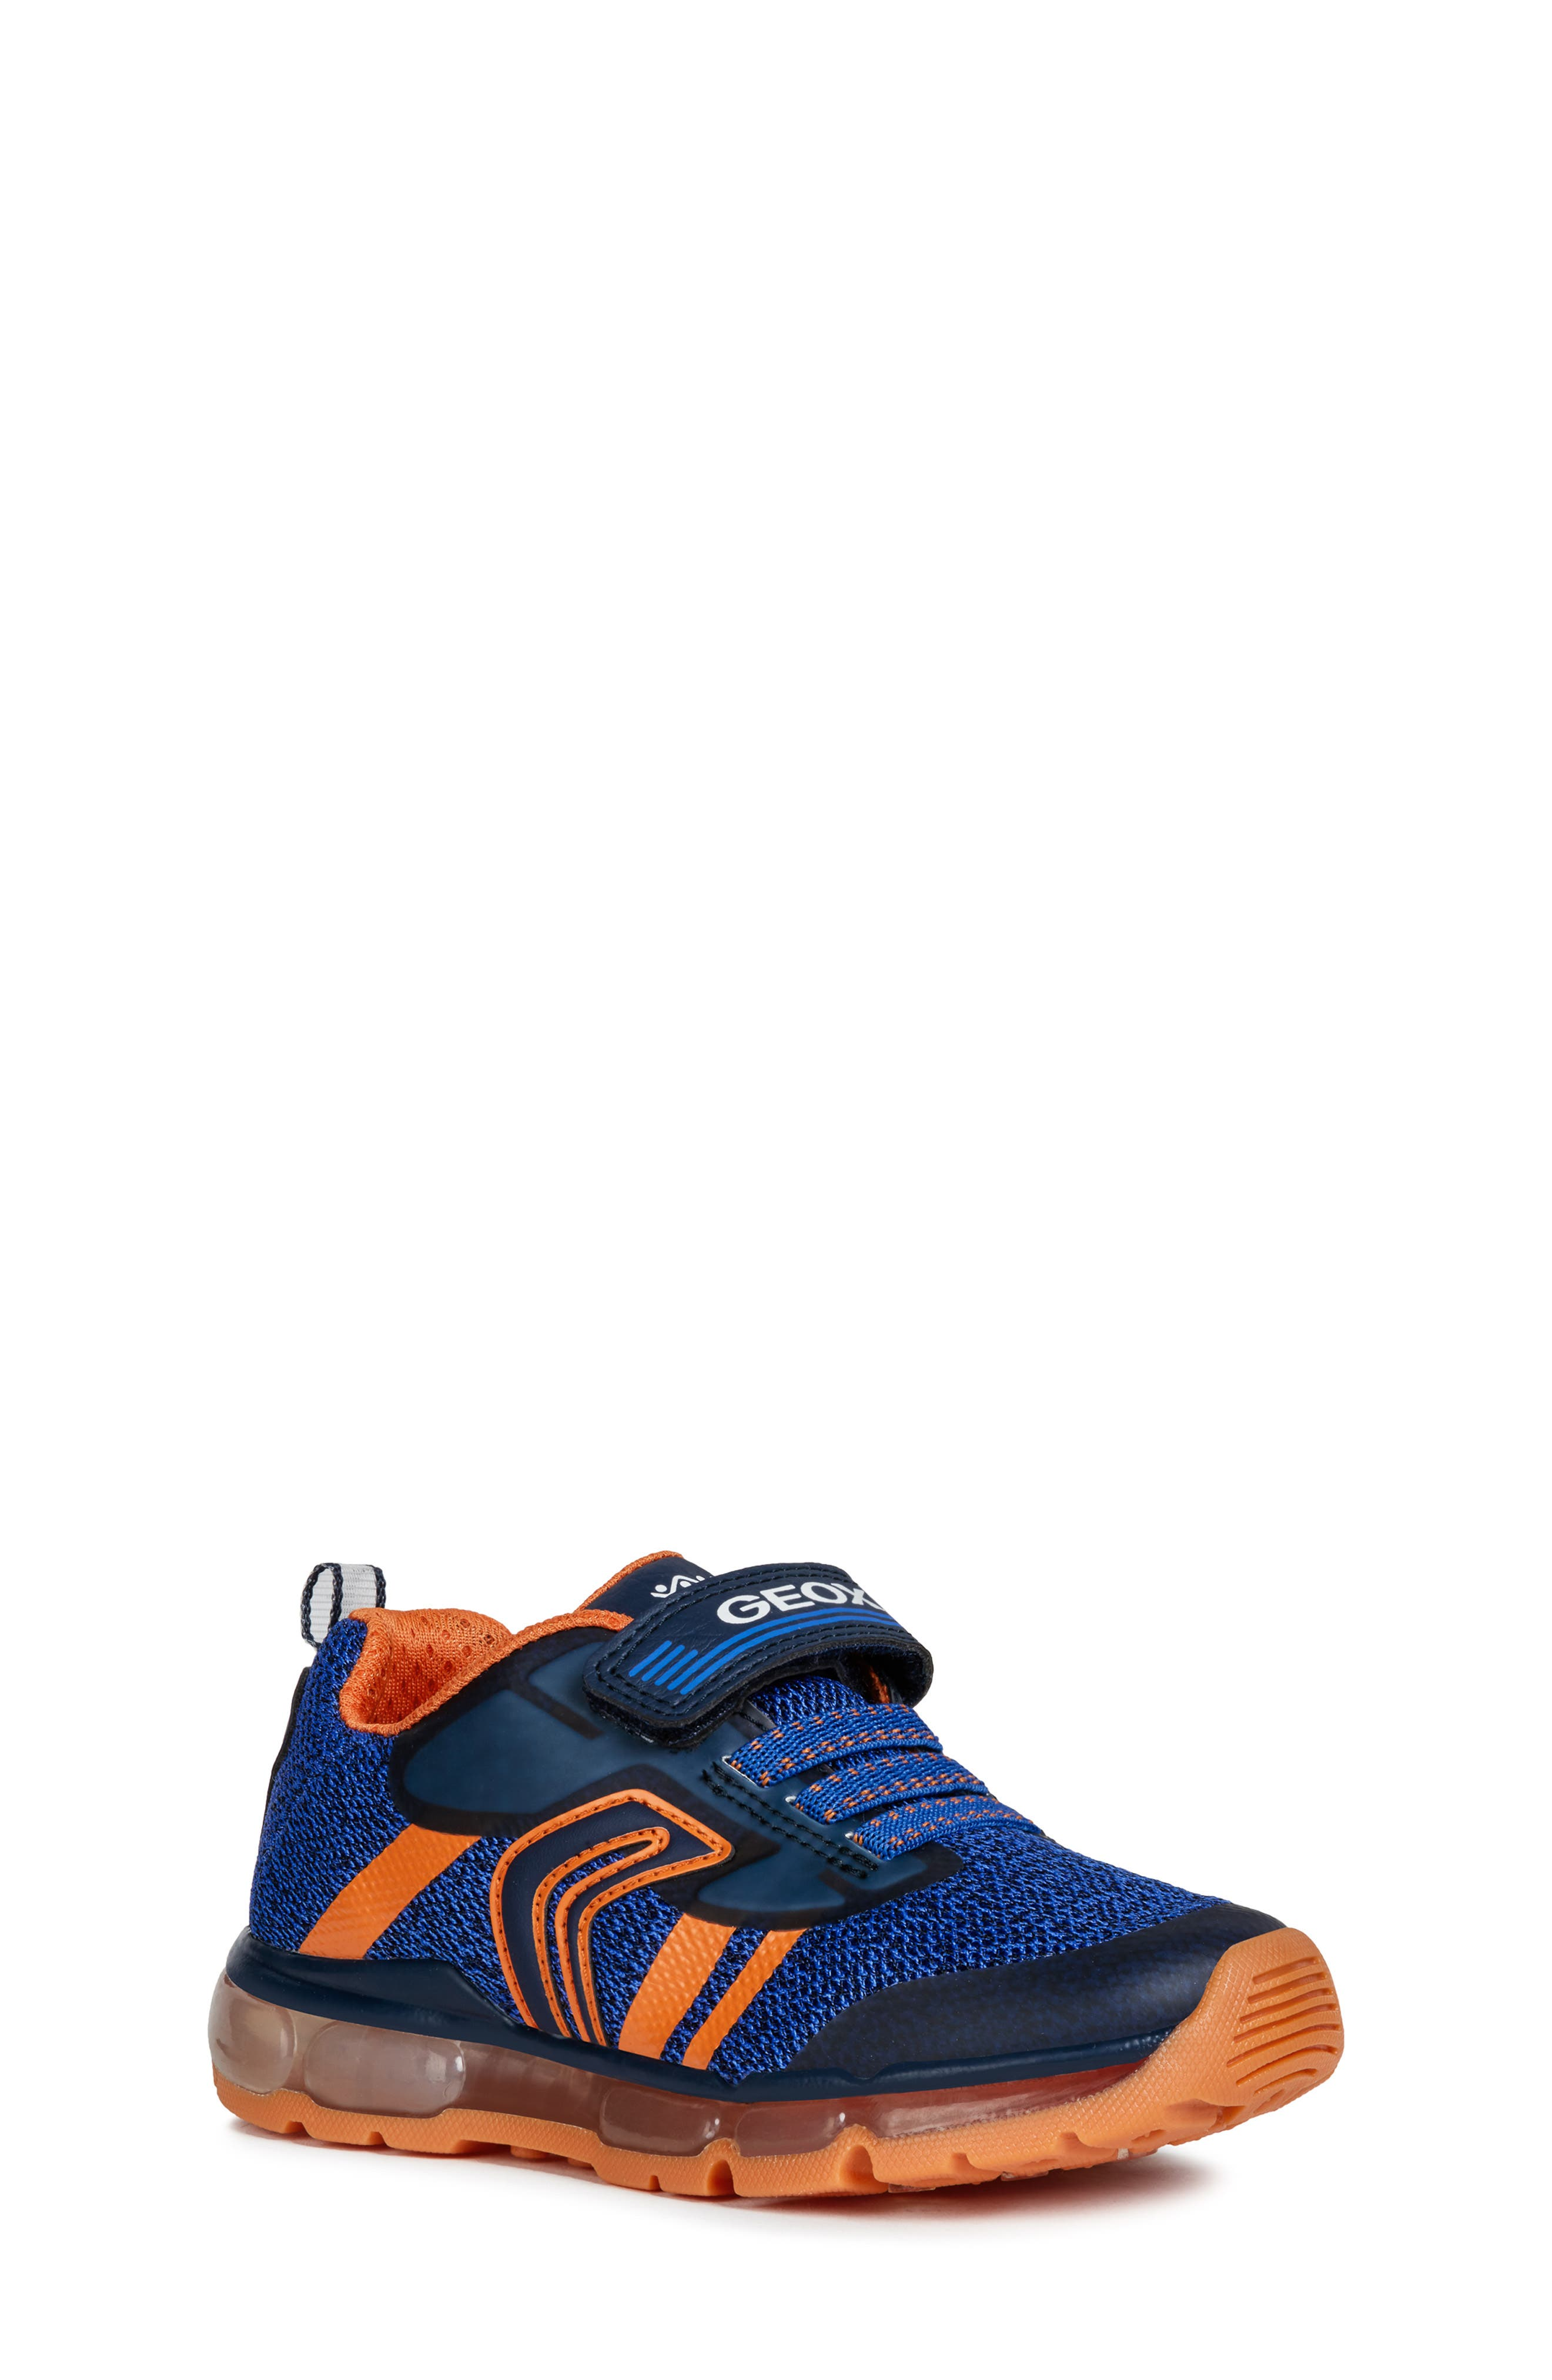 GEOX Android 19 Light-Up Sneaker, Main, color, NAVY/ ORANGE